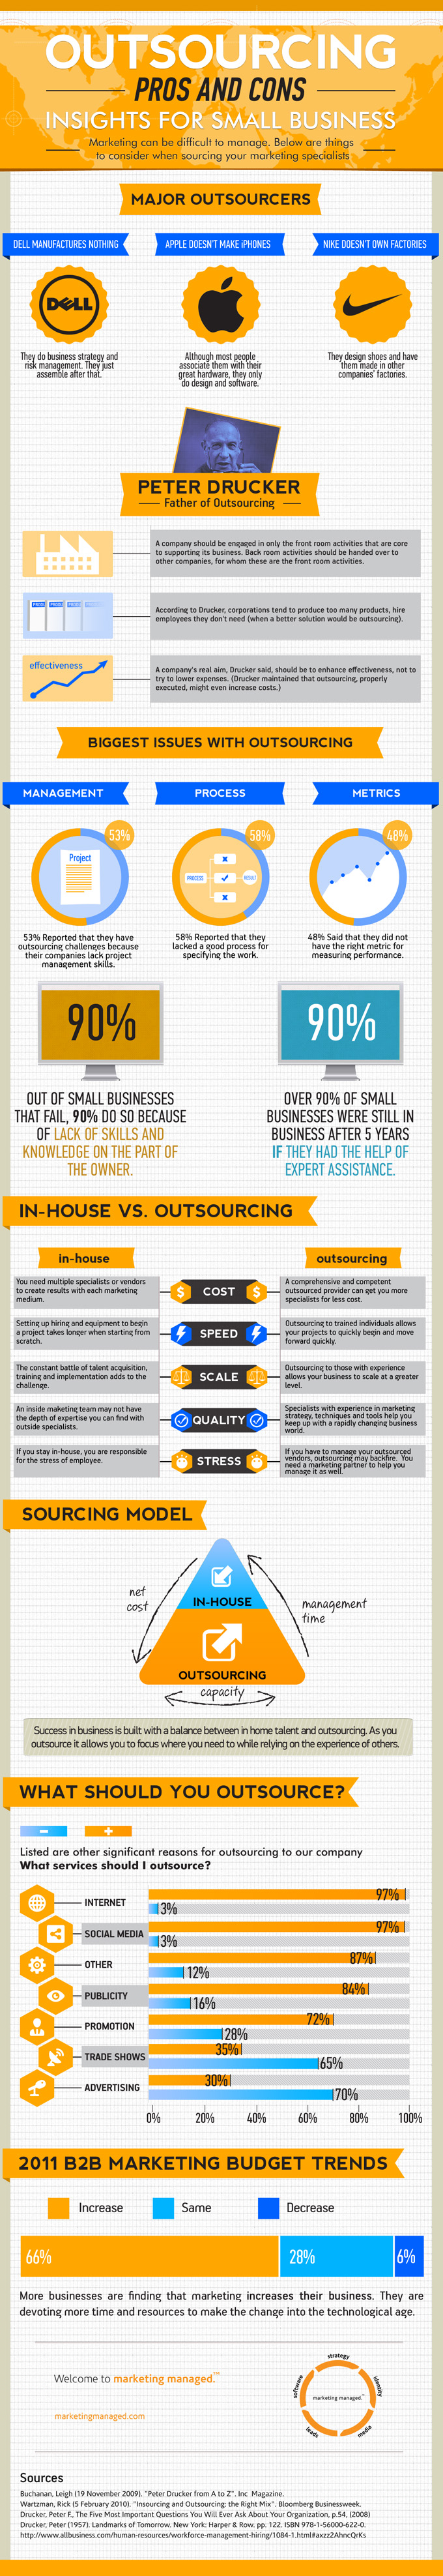 Outsourcing Pros and Cons Infographic